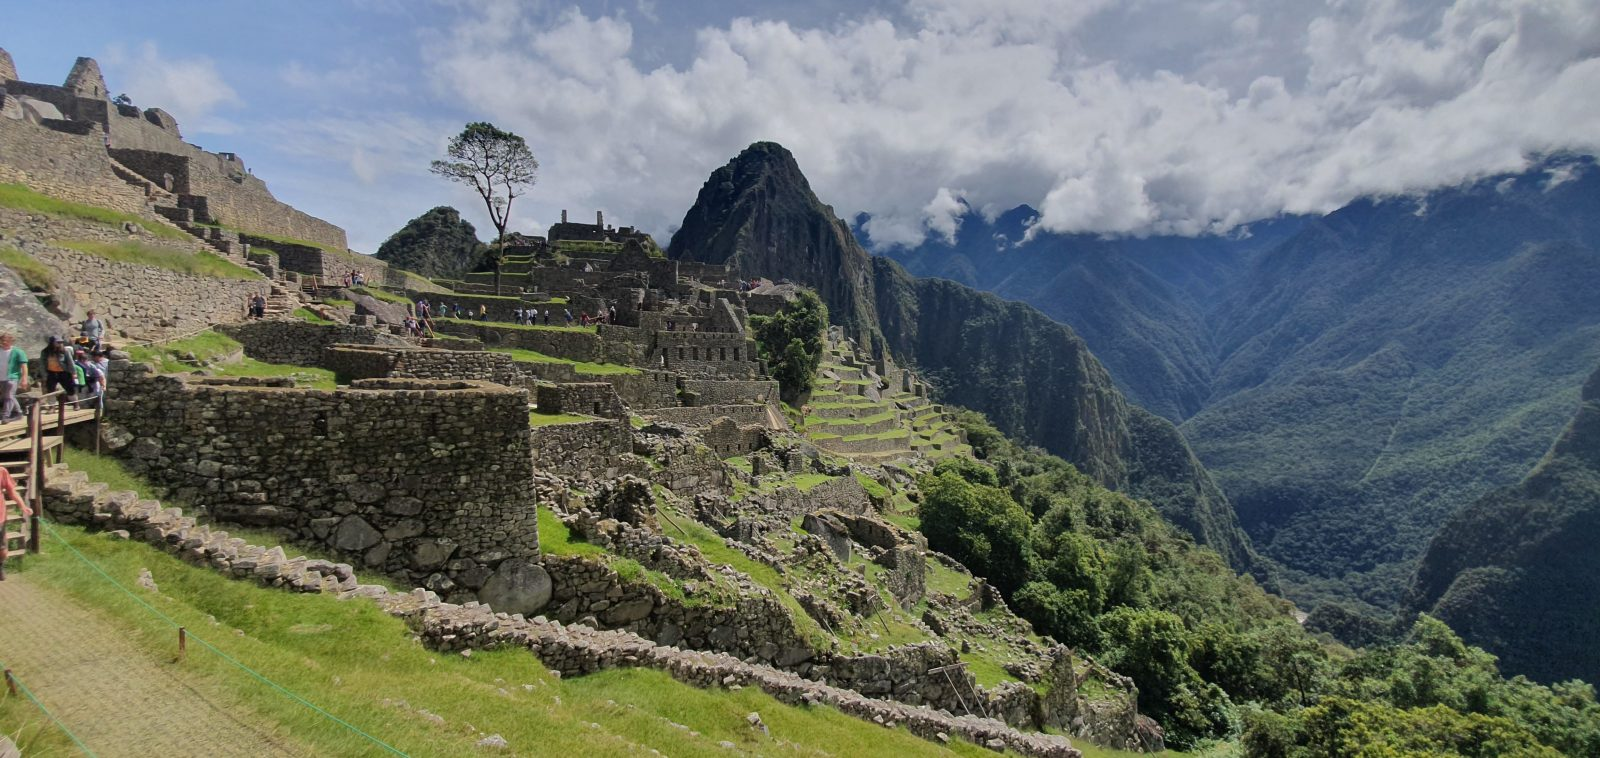 Photo of Macchu Pichu from the side